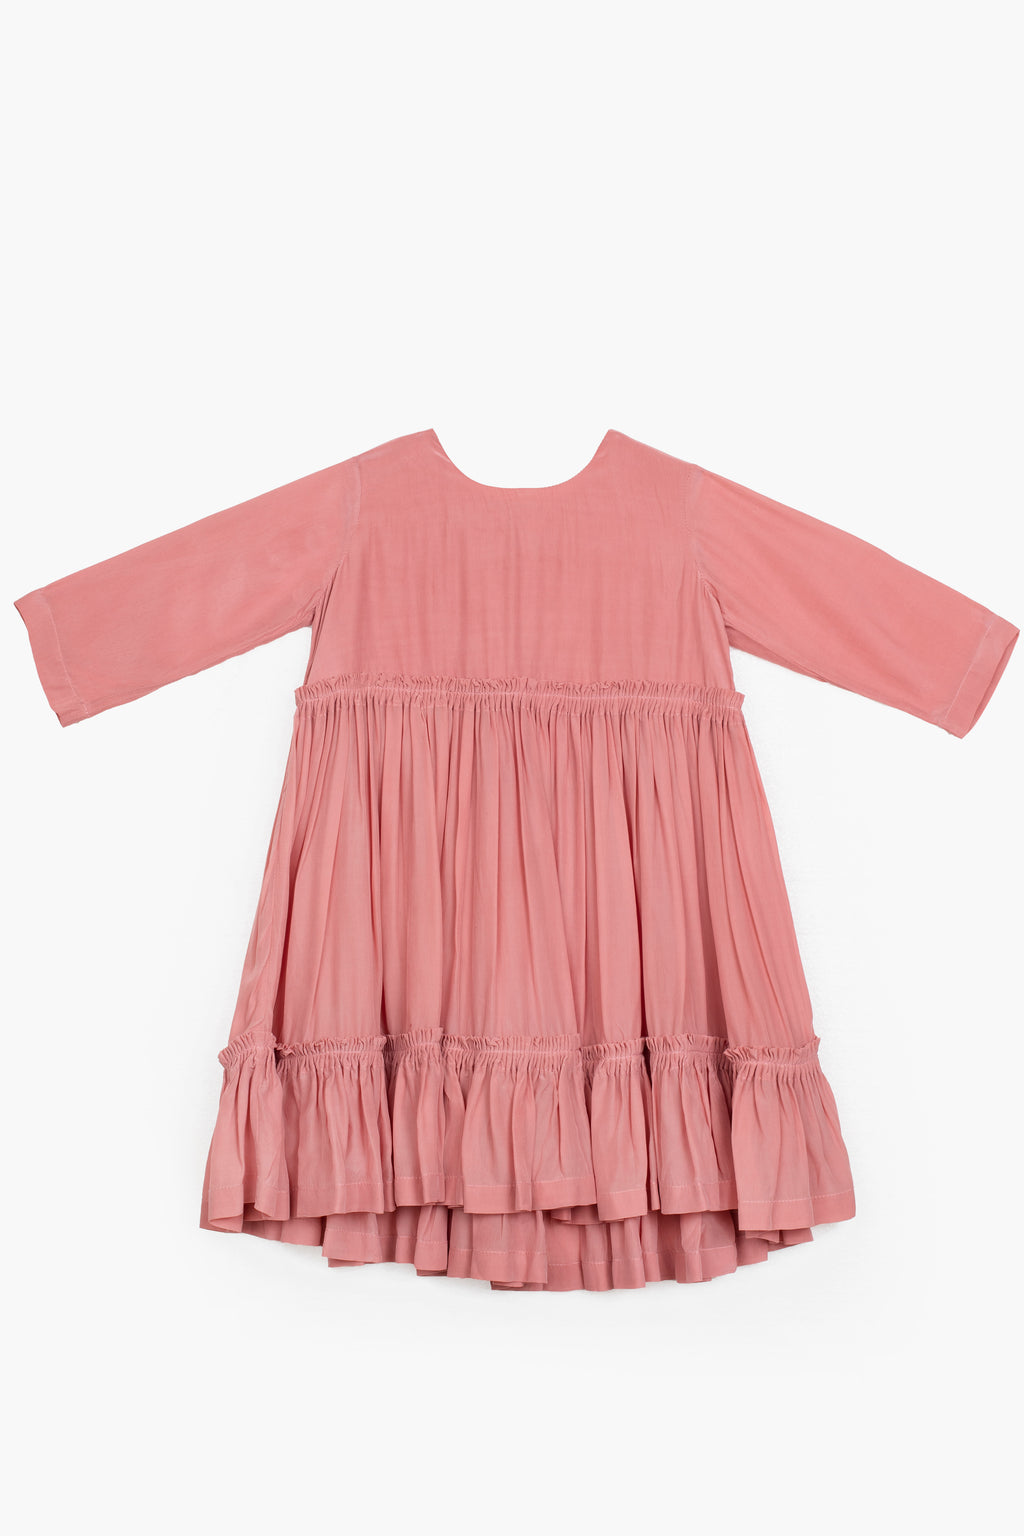 Frill Dress- Dusty Rose